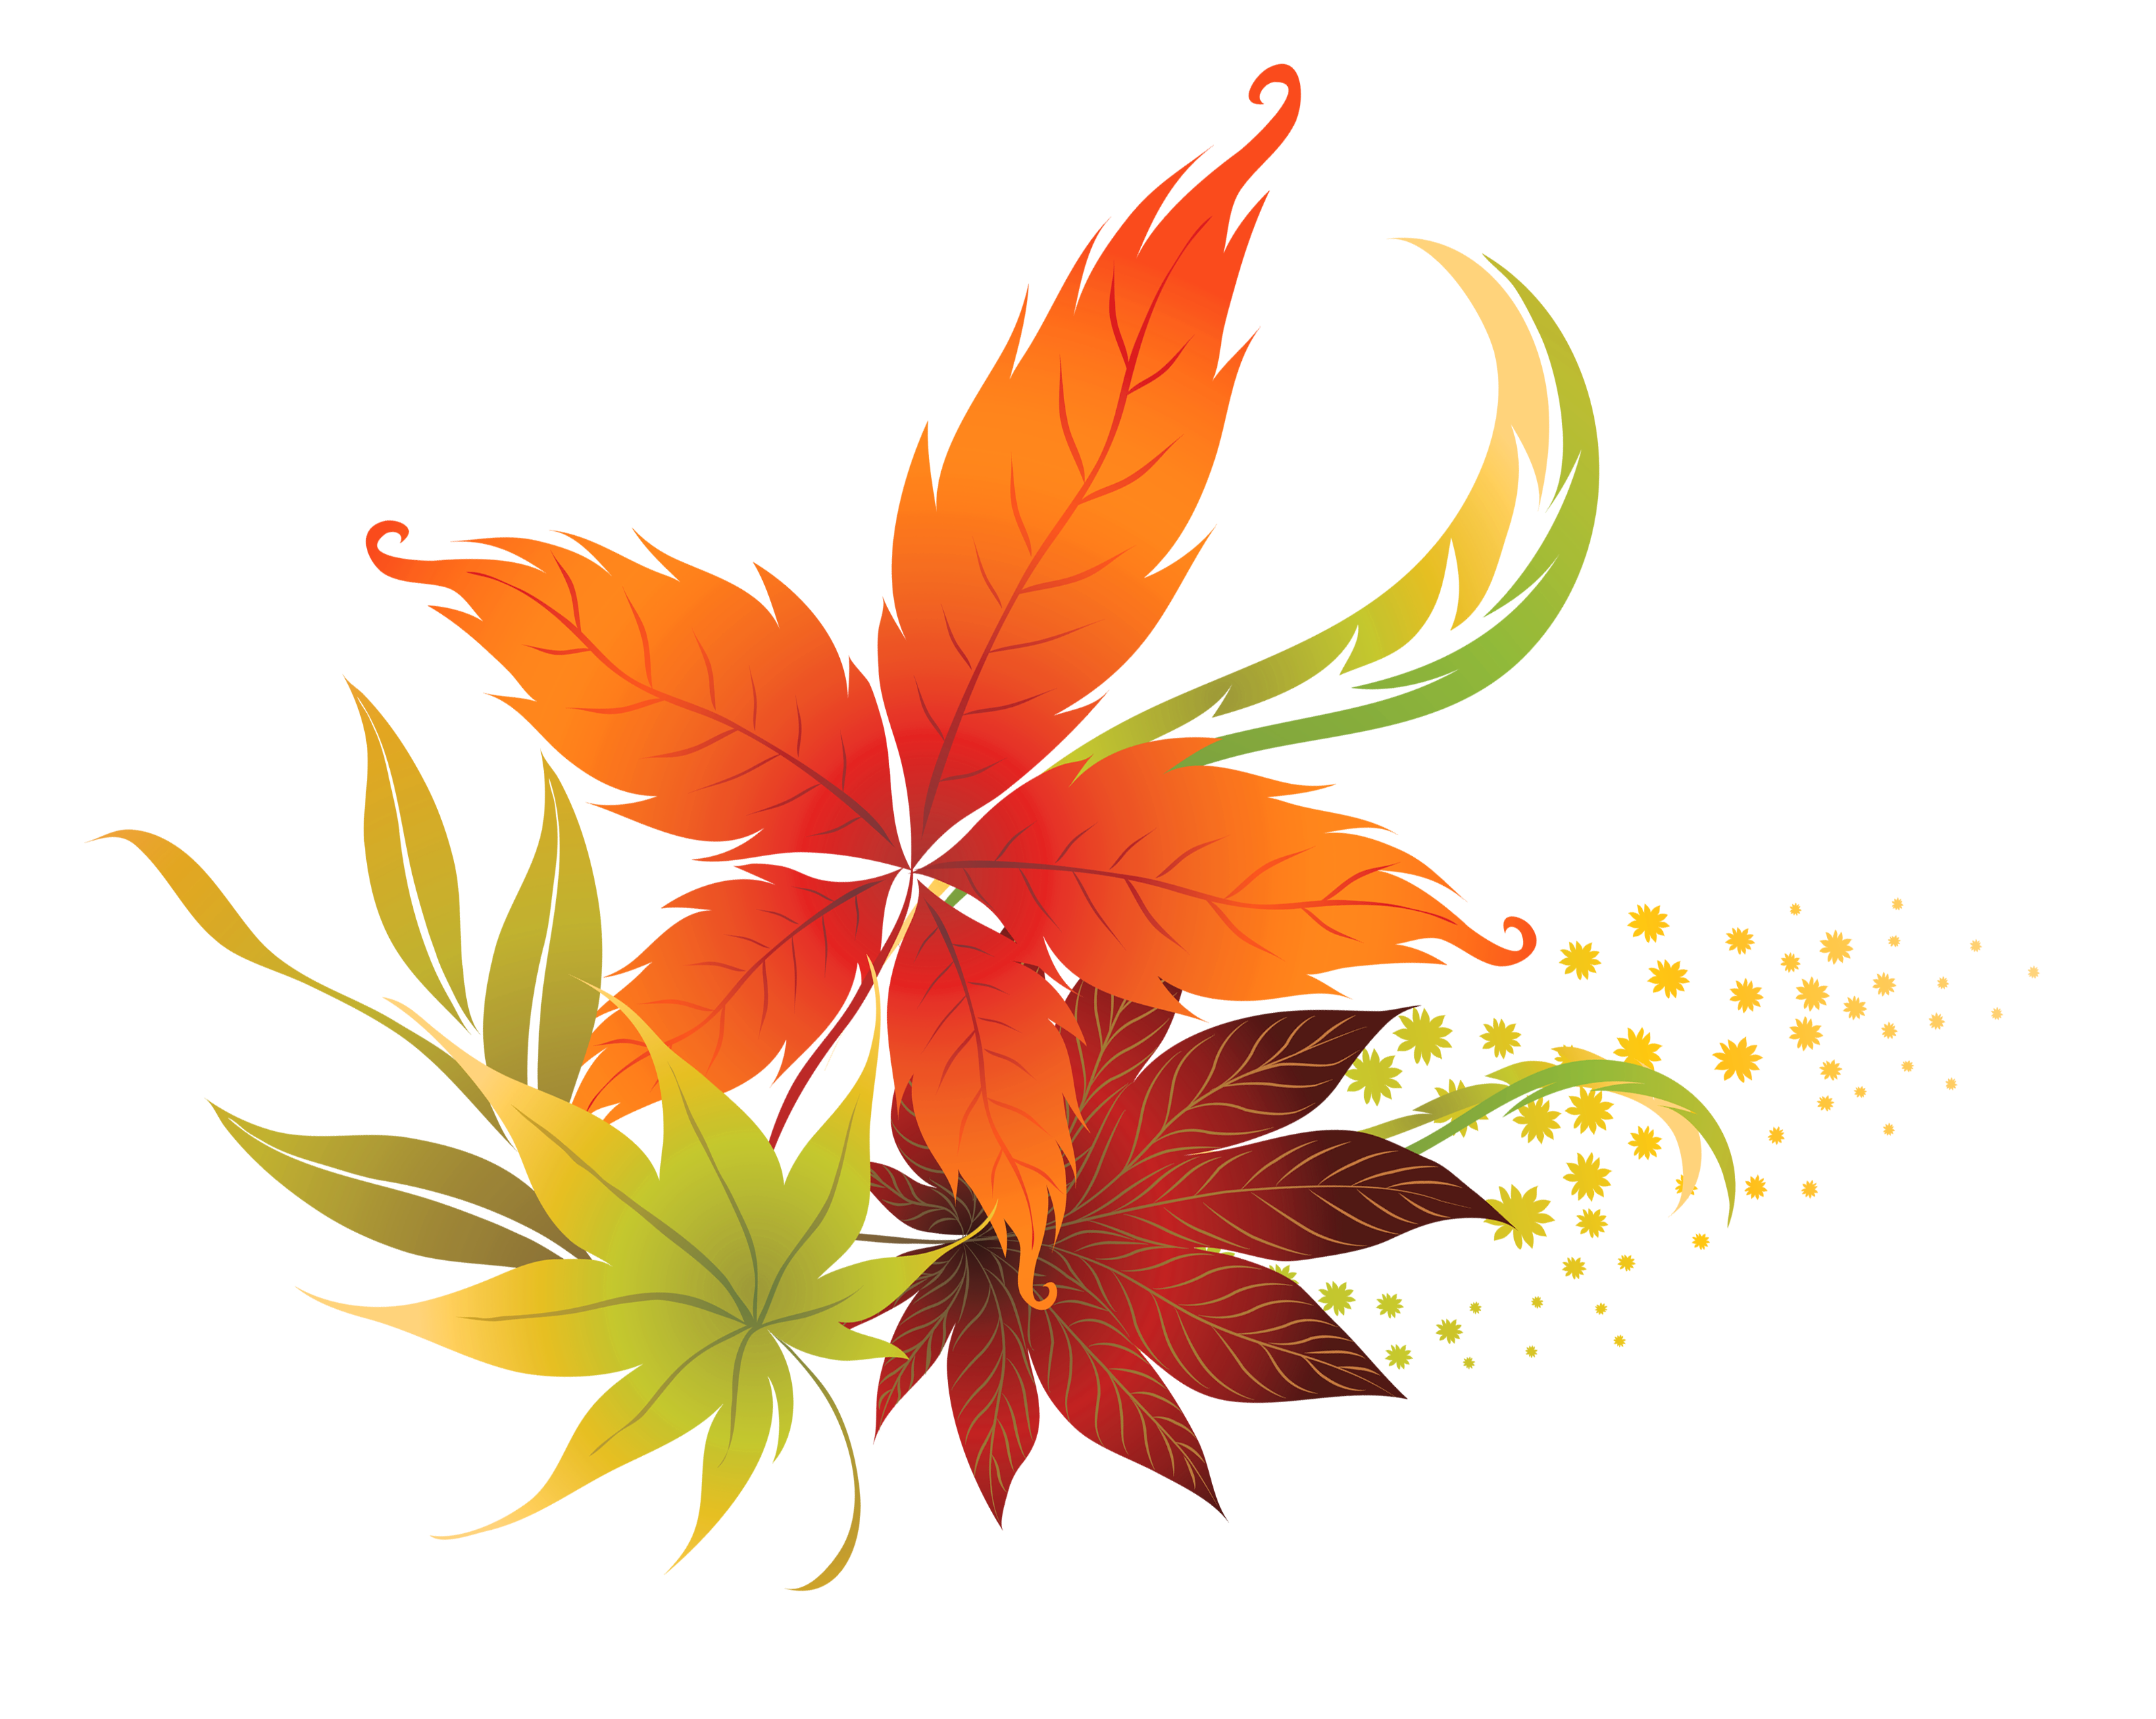 Free fall pictures clipart vector Free fall free autumn clip art pictures 2 - ClipartBarn vector